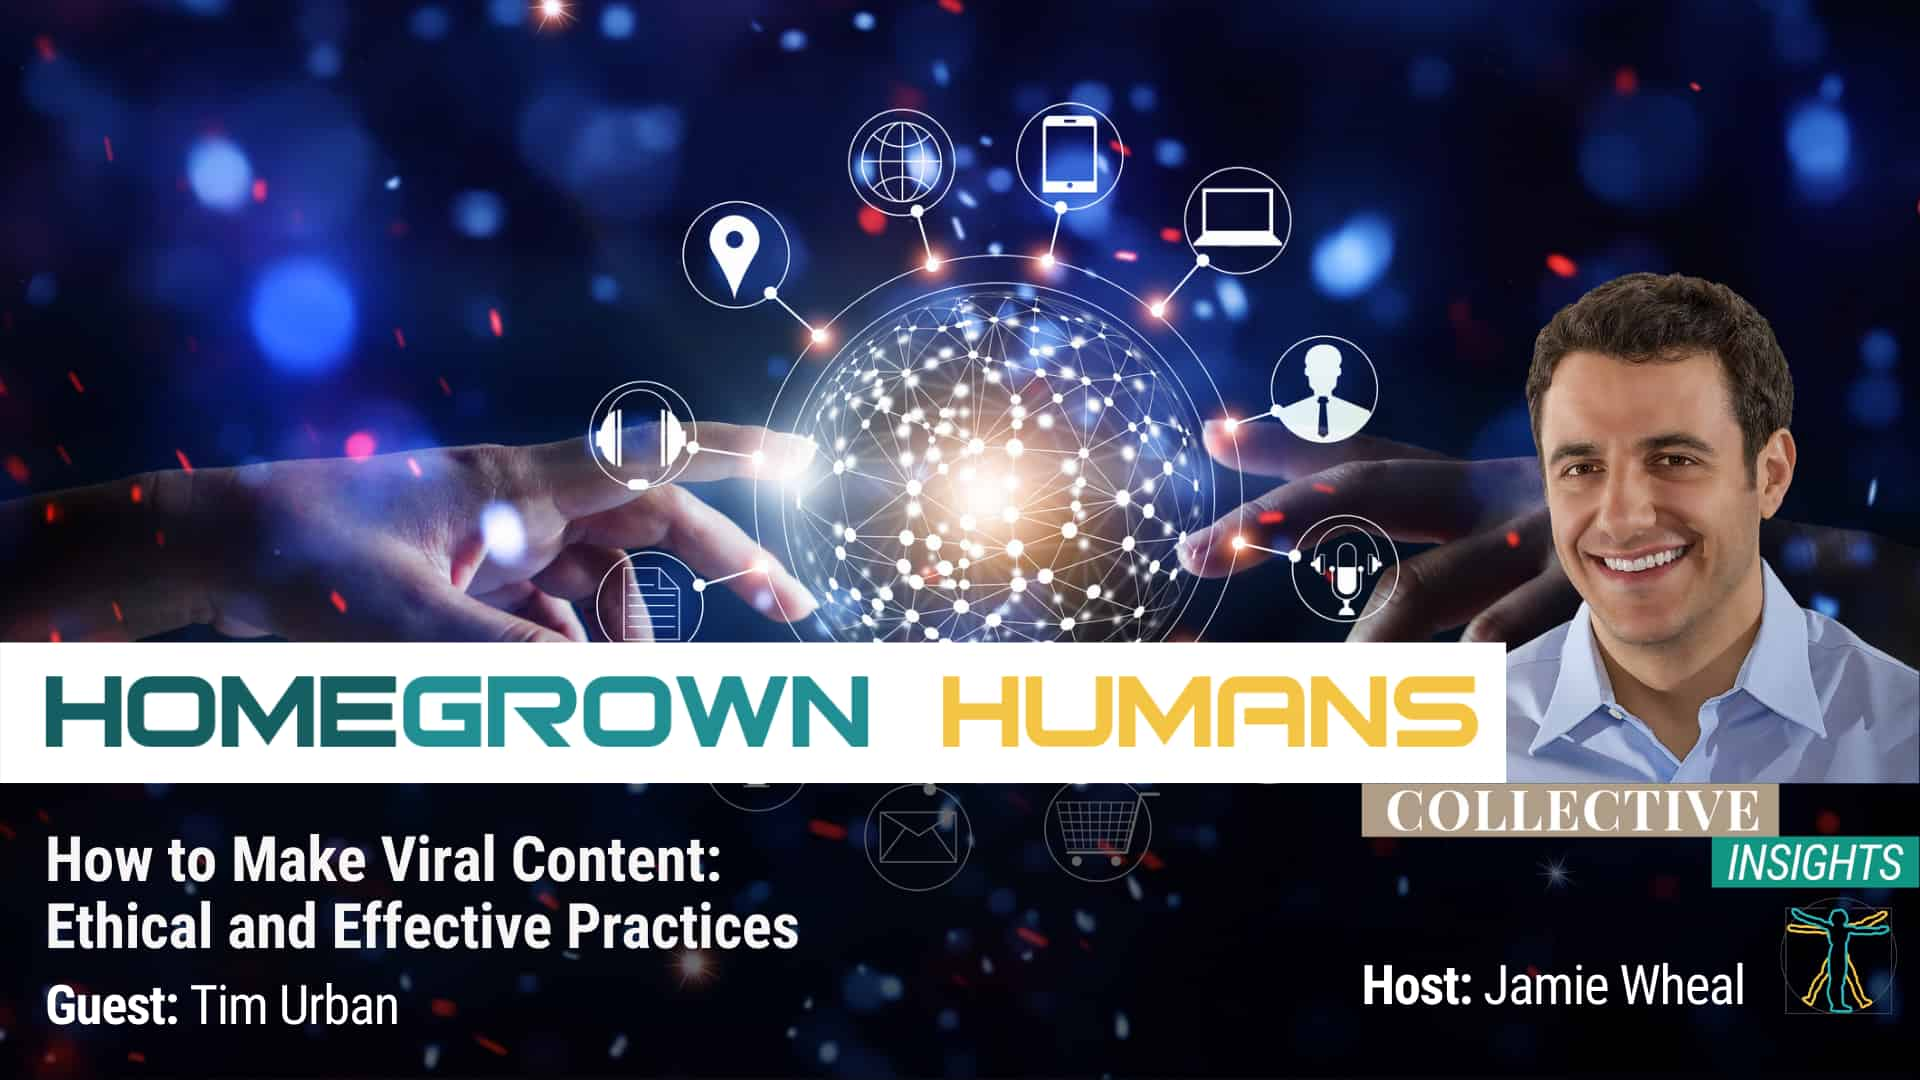 HomeGrown Humans - Tim Urban - Viral Content - Hosted by Jamie Wheal